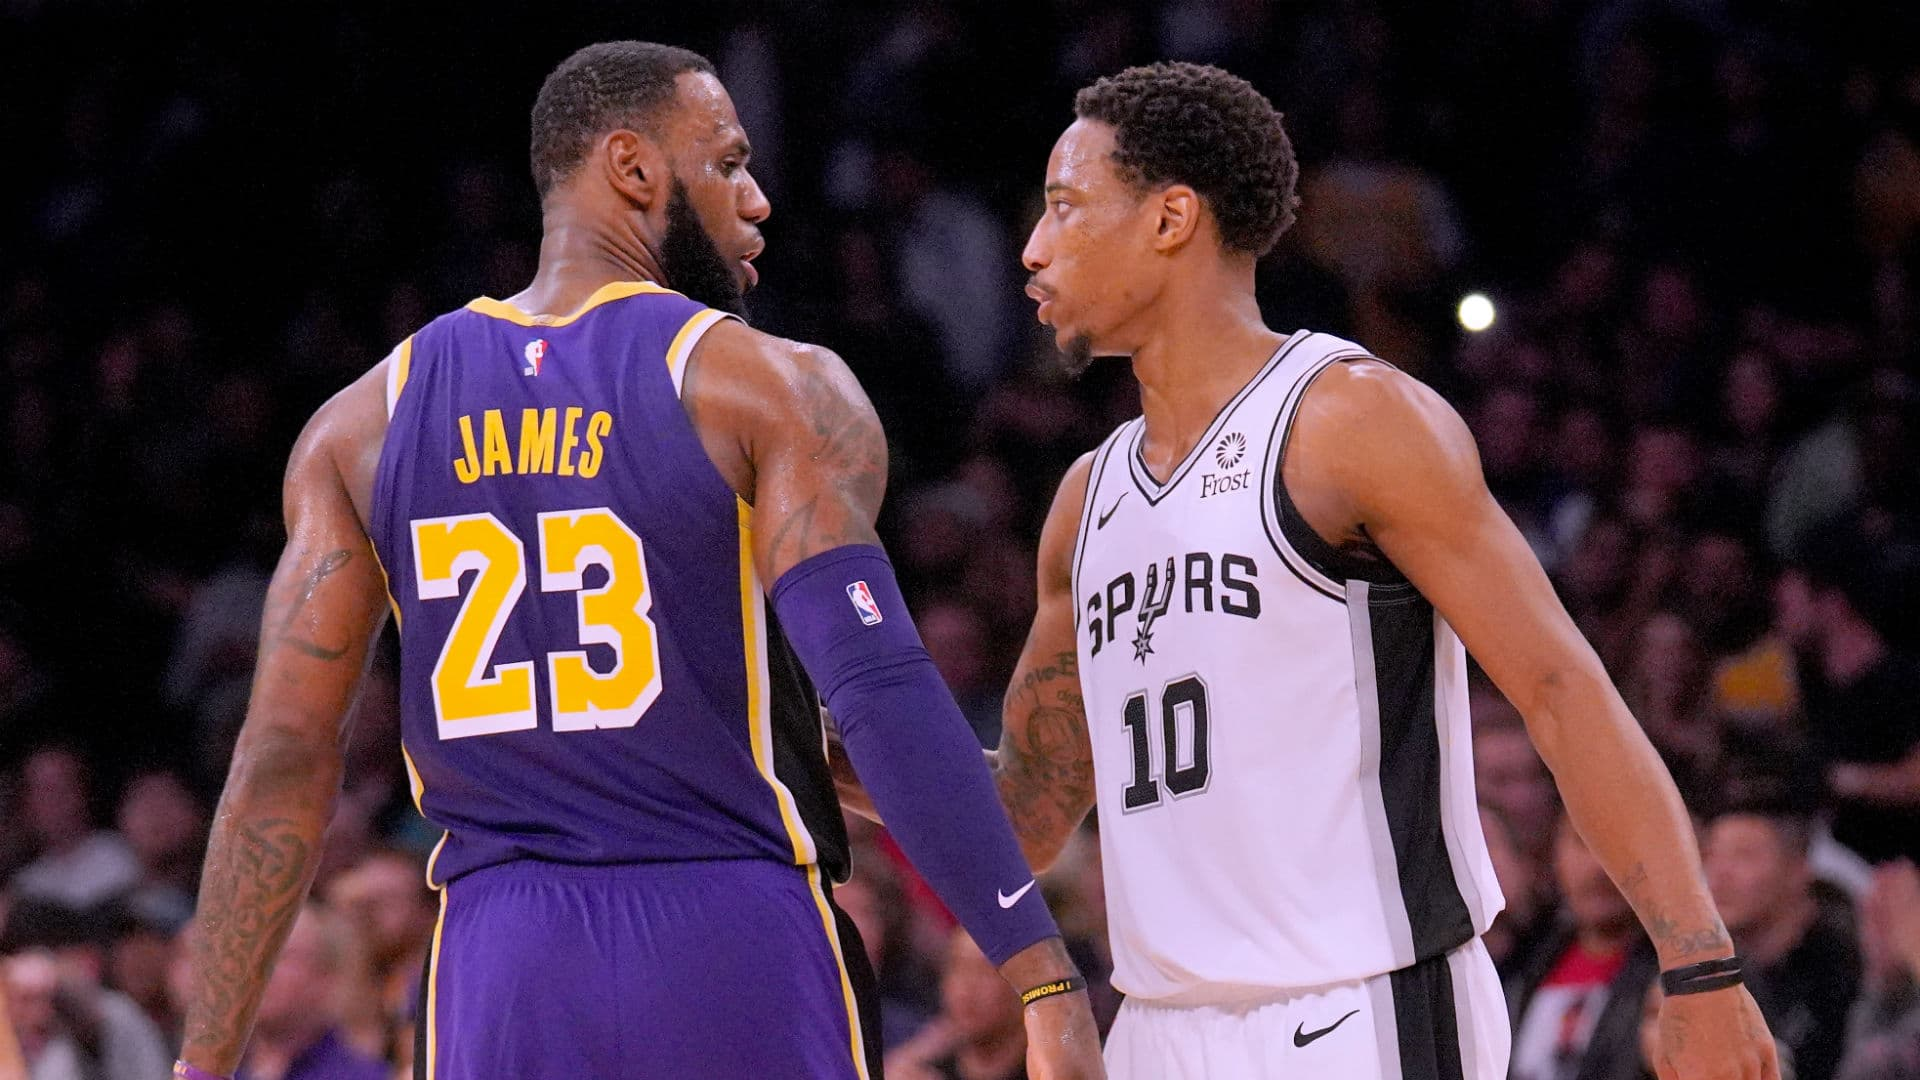 lakers-commerce-rumors-why-los-angeles-has-passion-in-spurs-demar-derozan.jpg